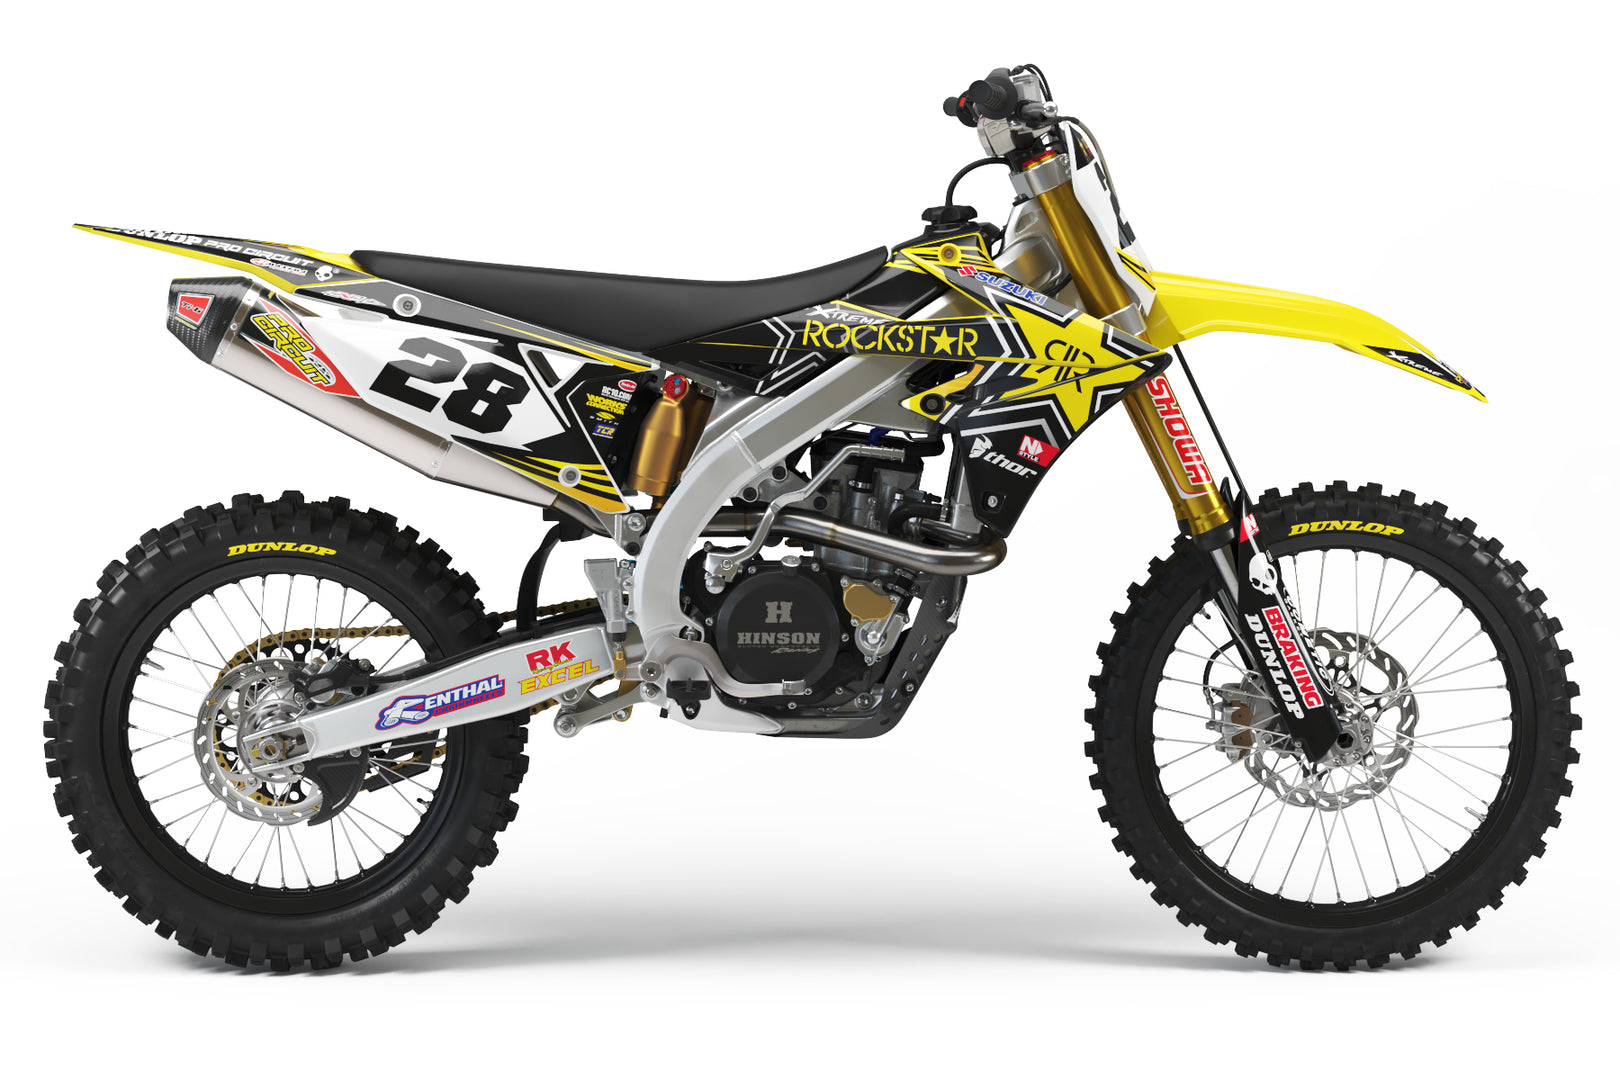 Ready-Made | Rockstar Suzuki Graphic Team Kit